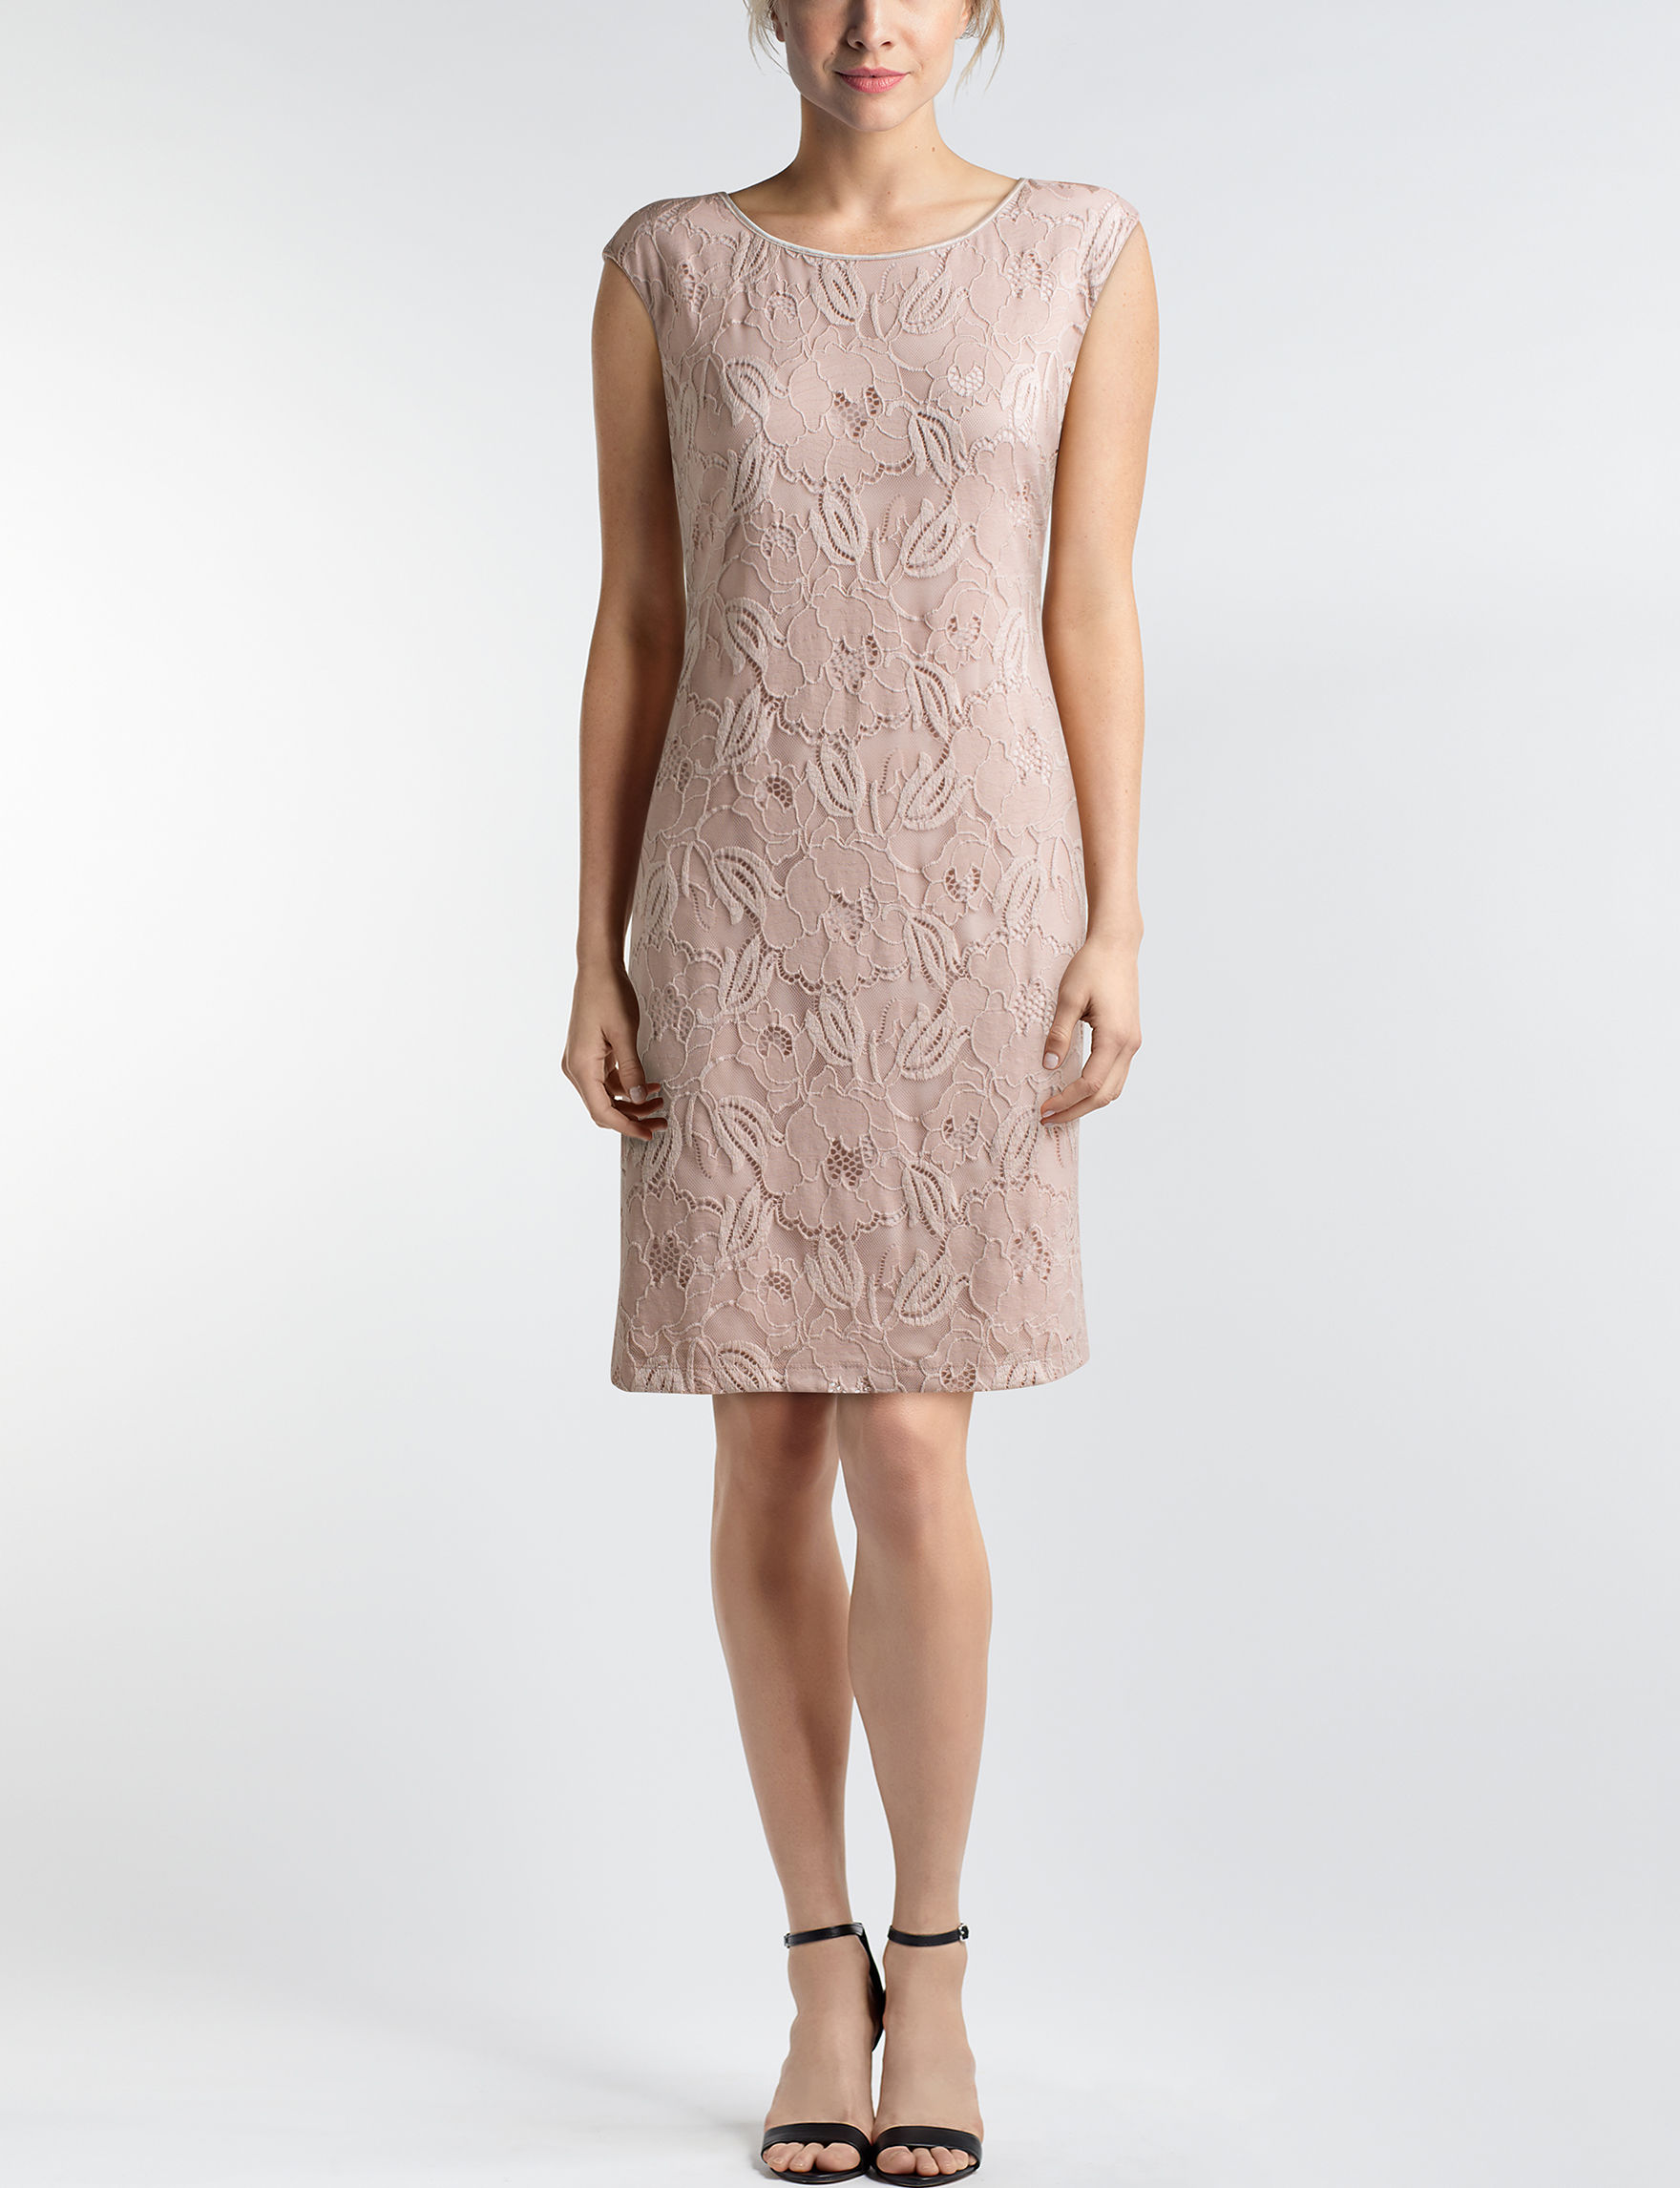 Connected Blush Everyday & Casual Sheath Dresses